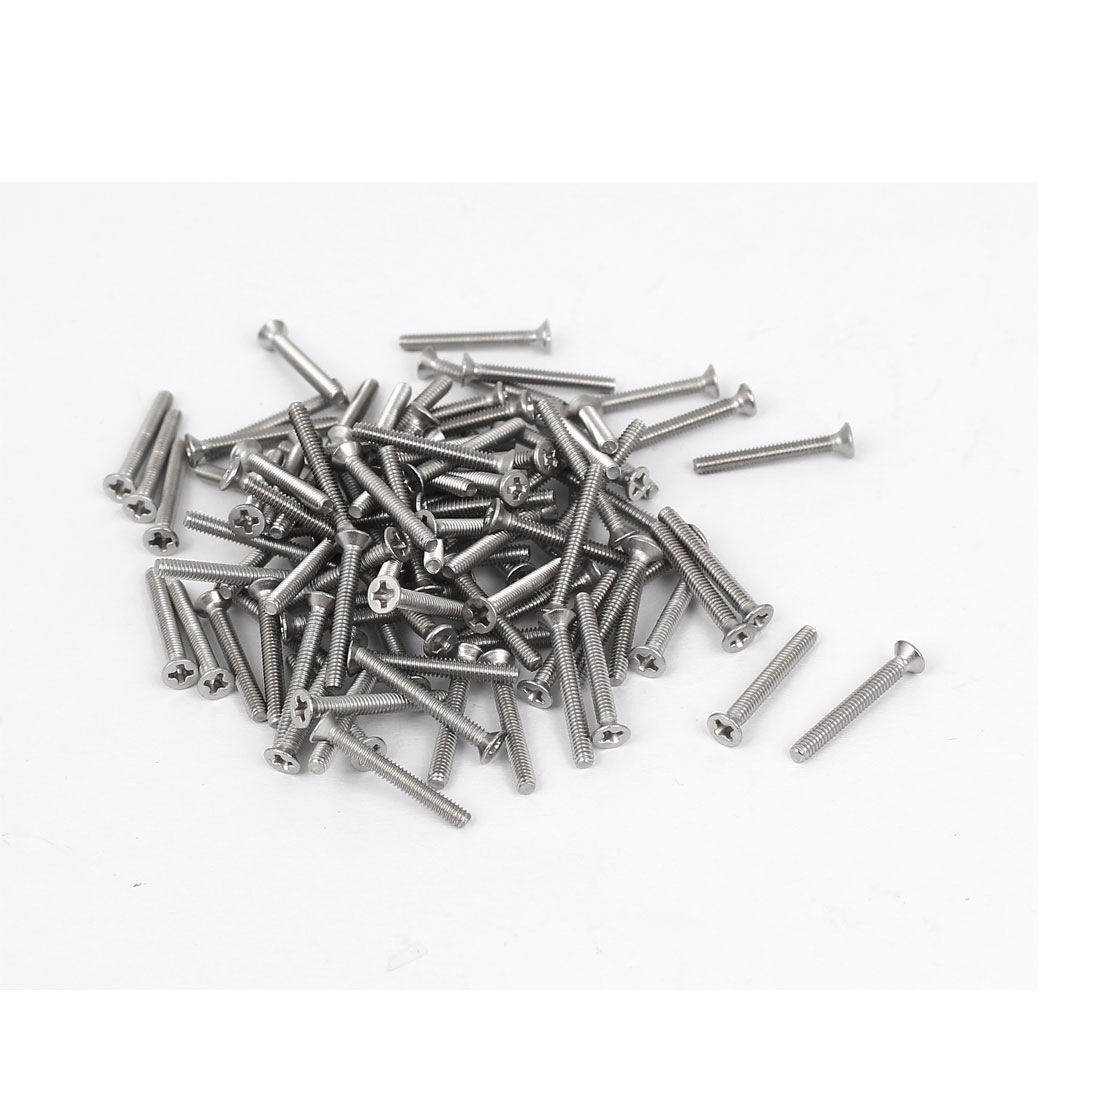 M2x16mm 304 Stainless Steel Phillips Flat Countersunk Head Machine Screws 100pcs